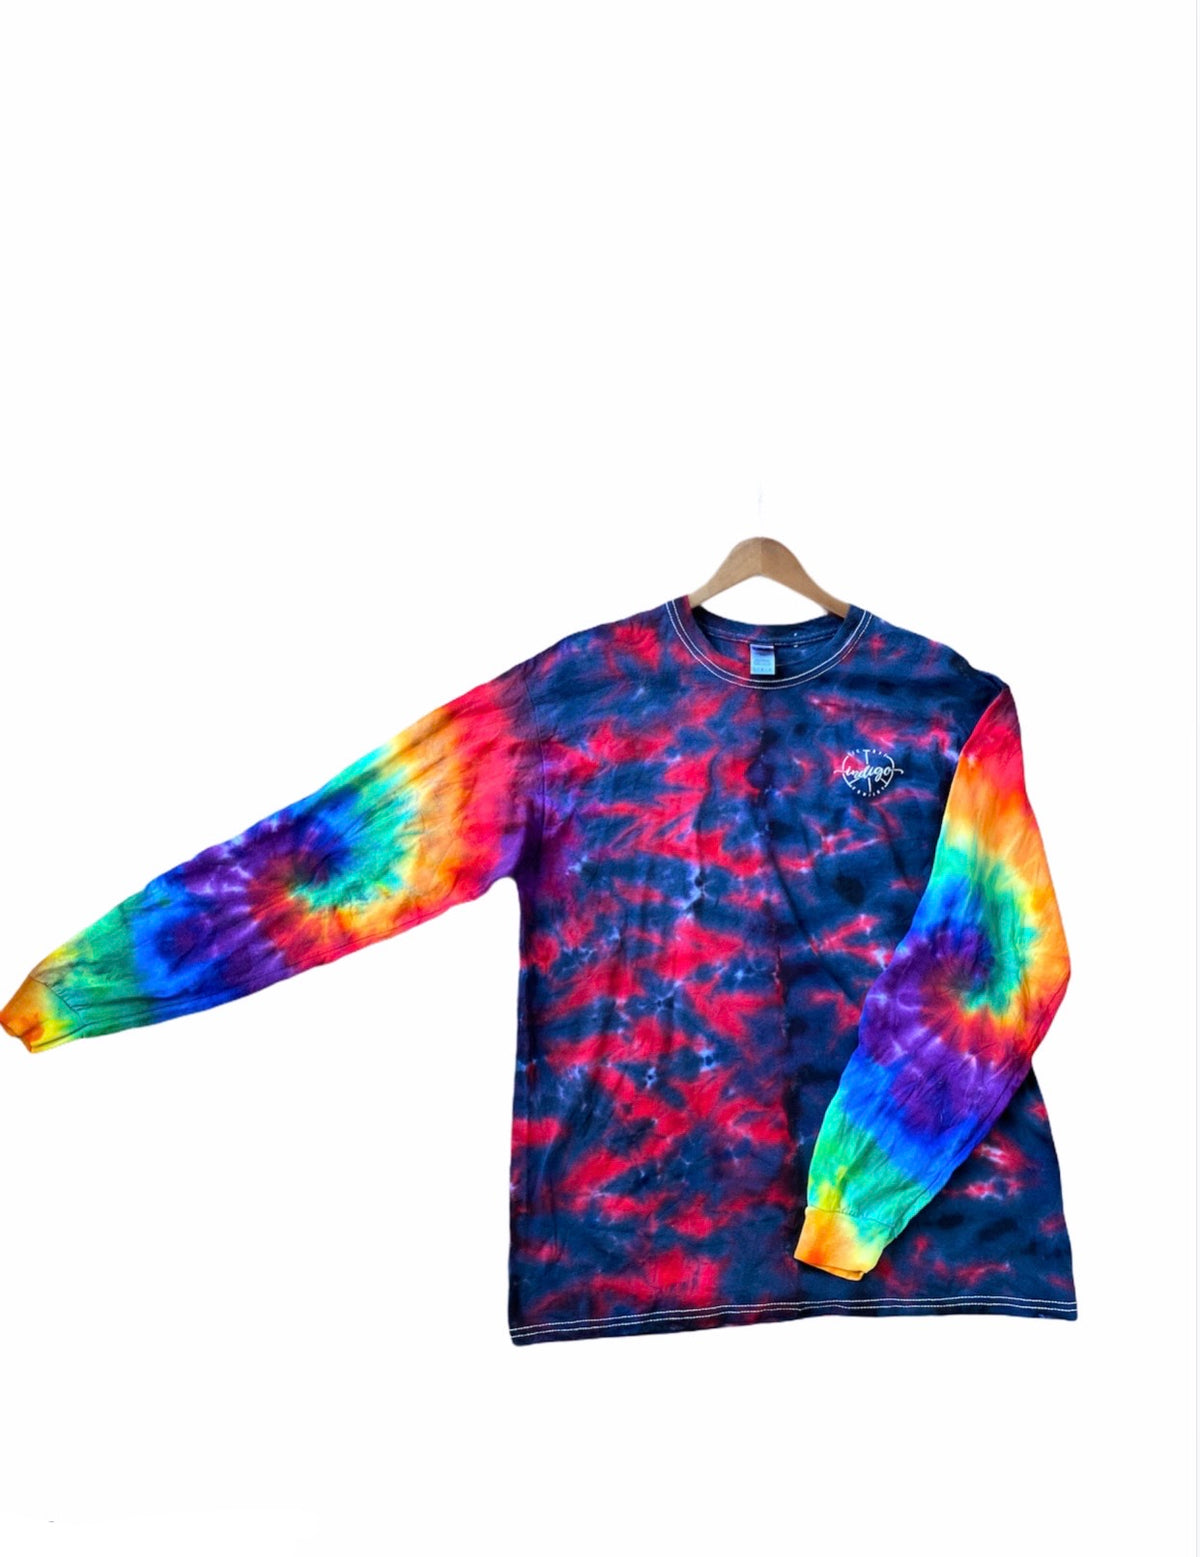 Double Swirl Sleeve Long Sleeve Tee